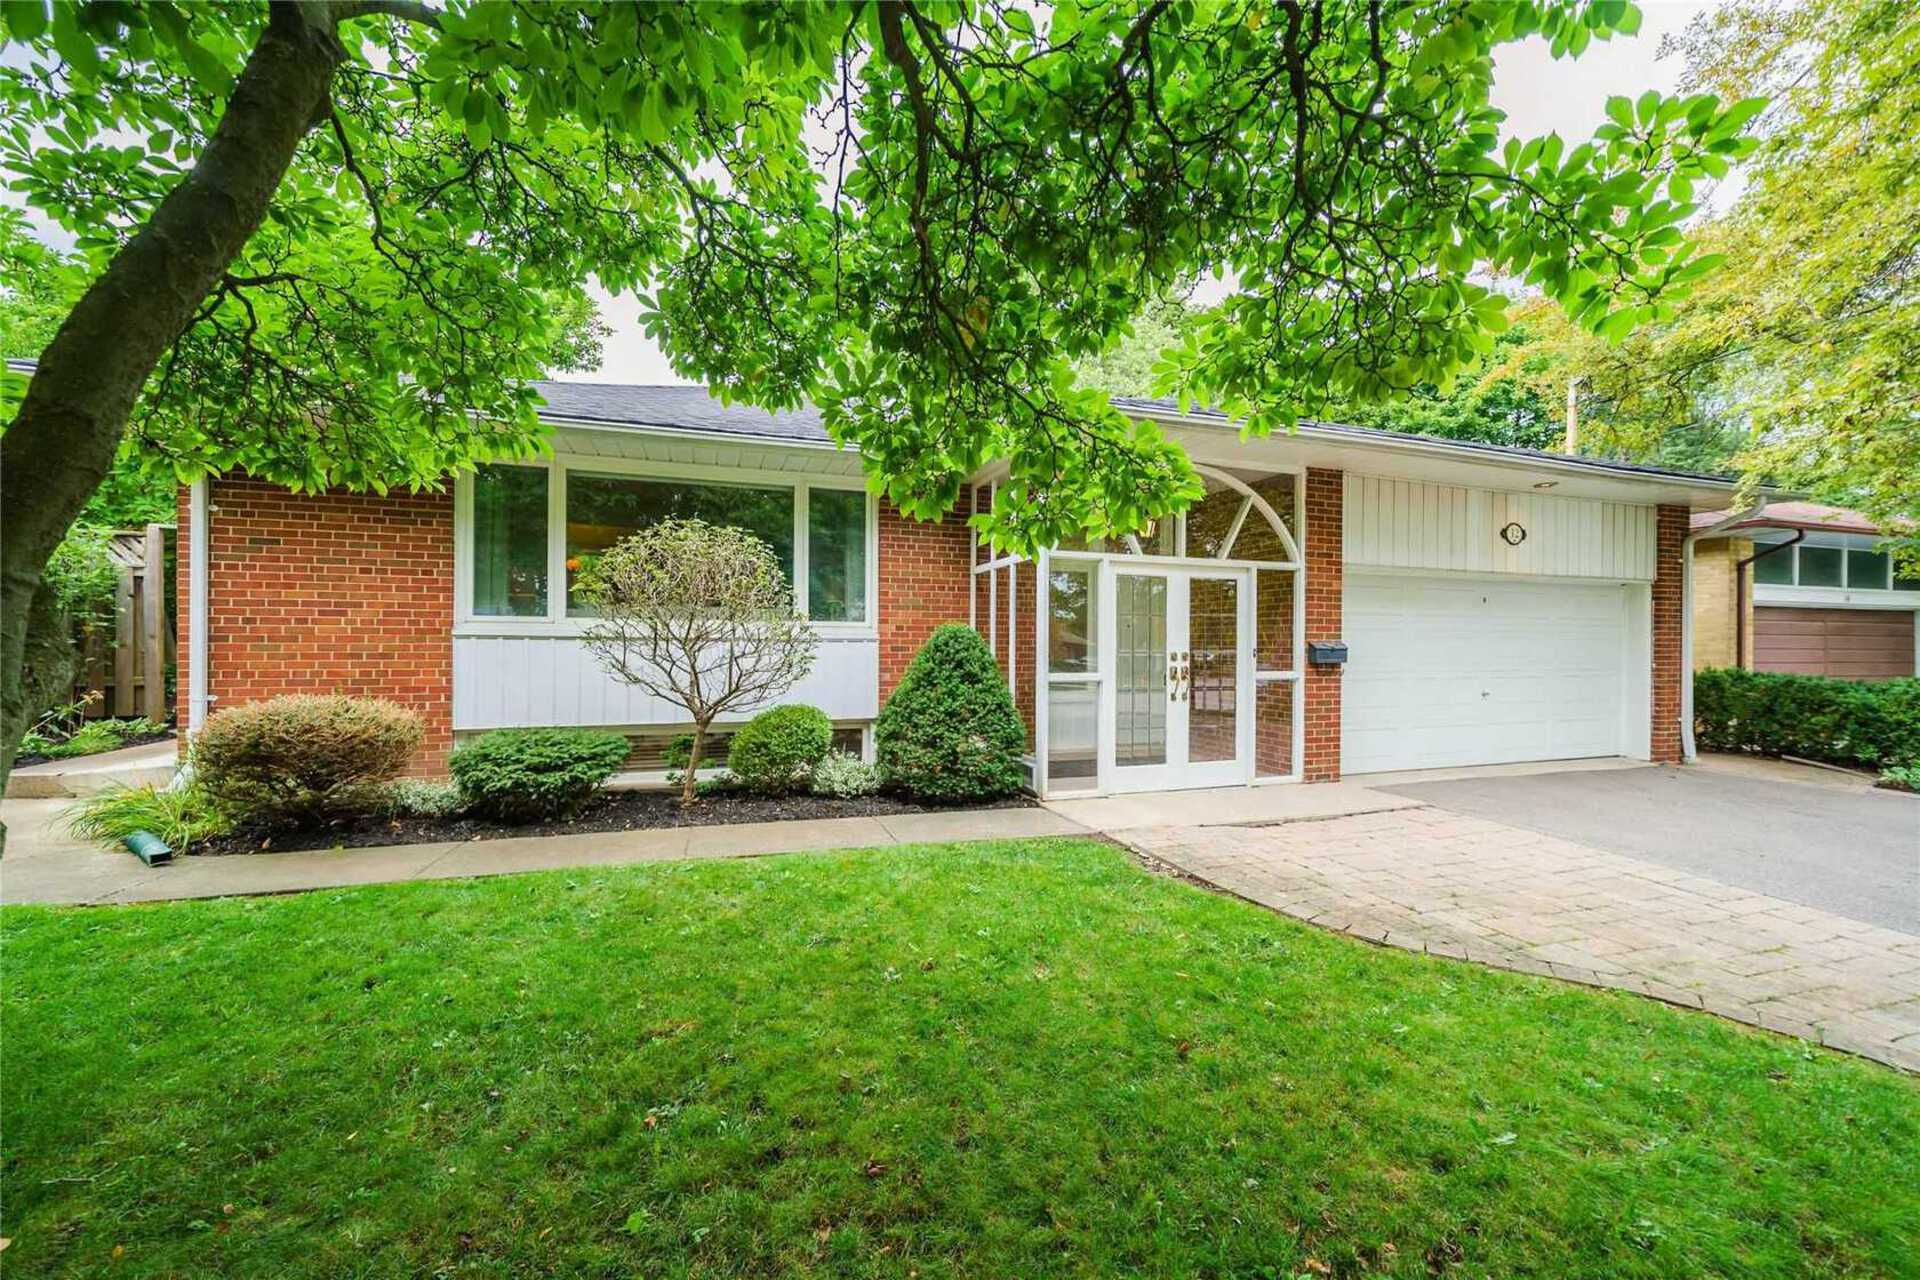 12-bayberry-cres-bayview-village-toronto-29 at 12 Bayberry Crescent, Bayview Village, Toronto